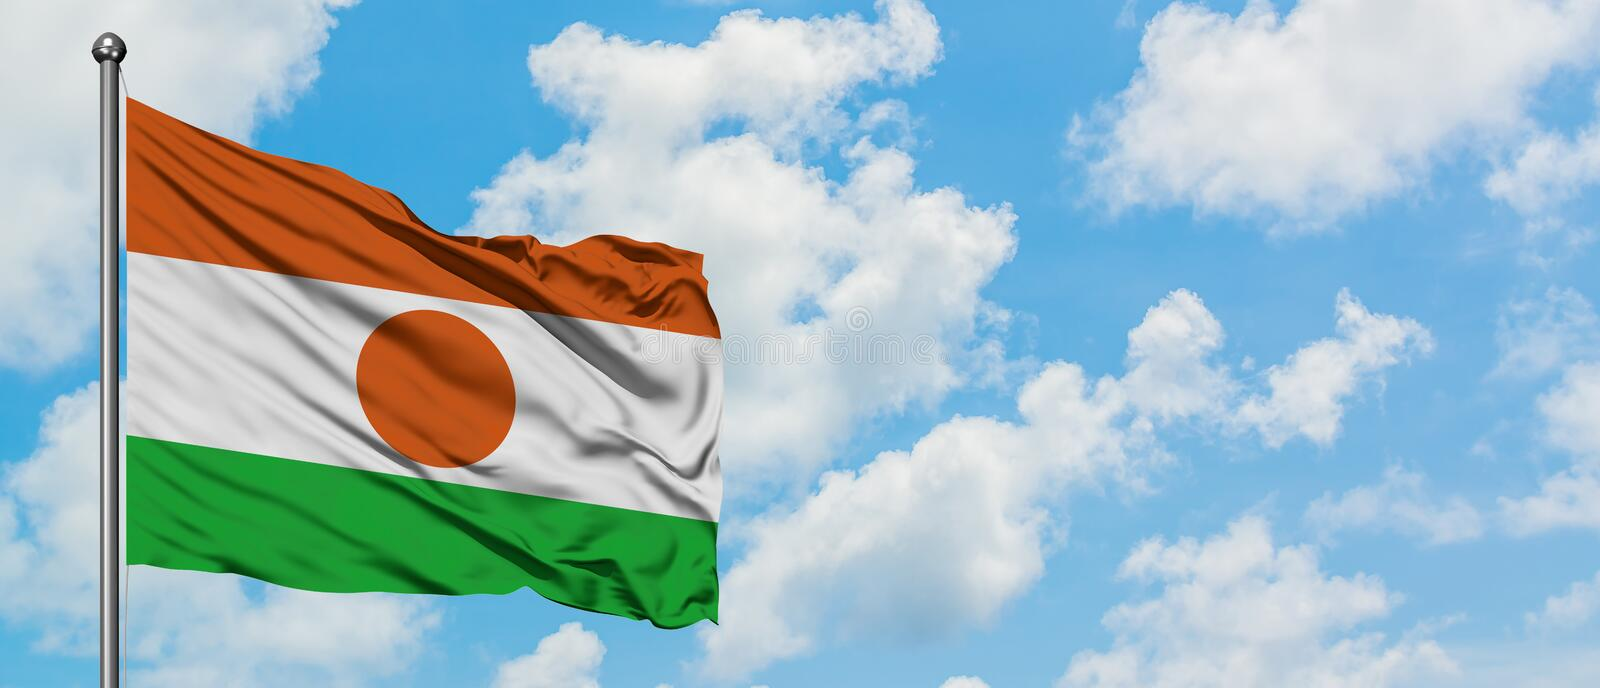 Niger flag waving in the wind against white cloudy blue sky. Diplomacy concept, international relations.  royalty free stock photography